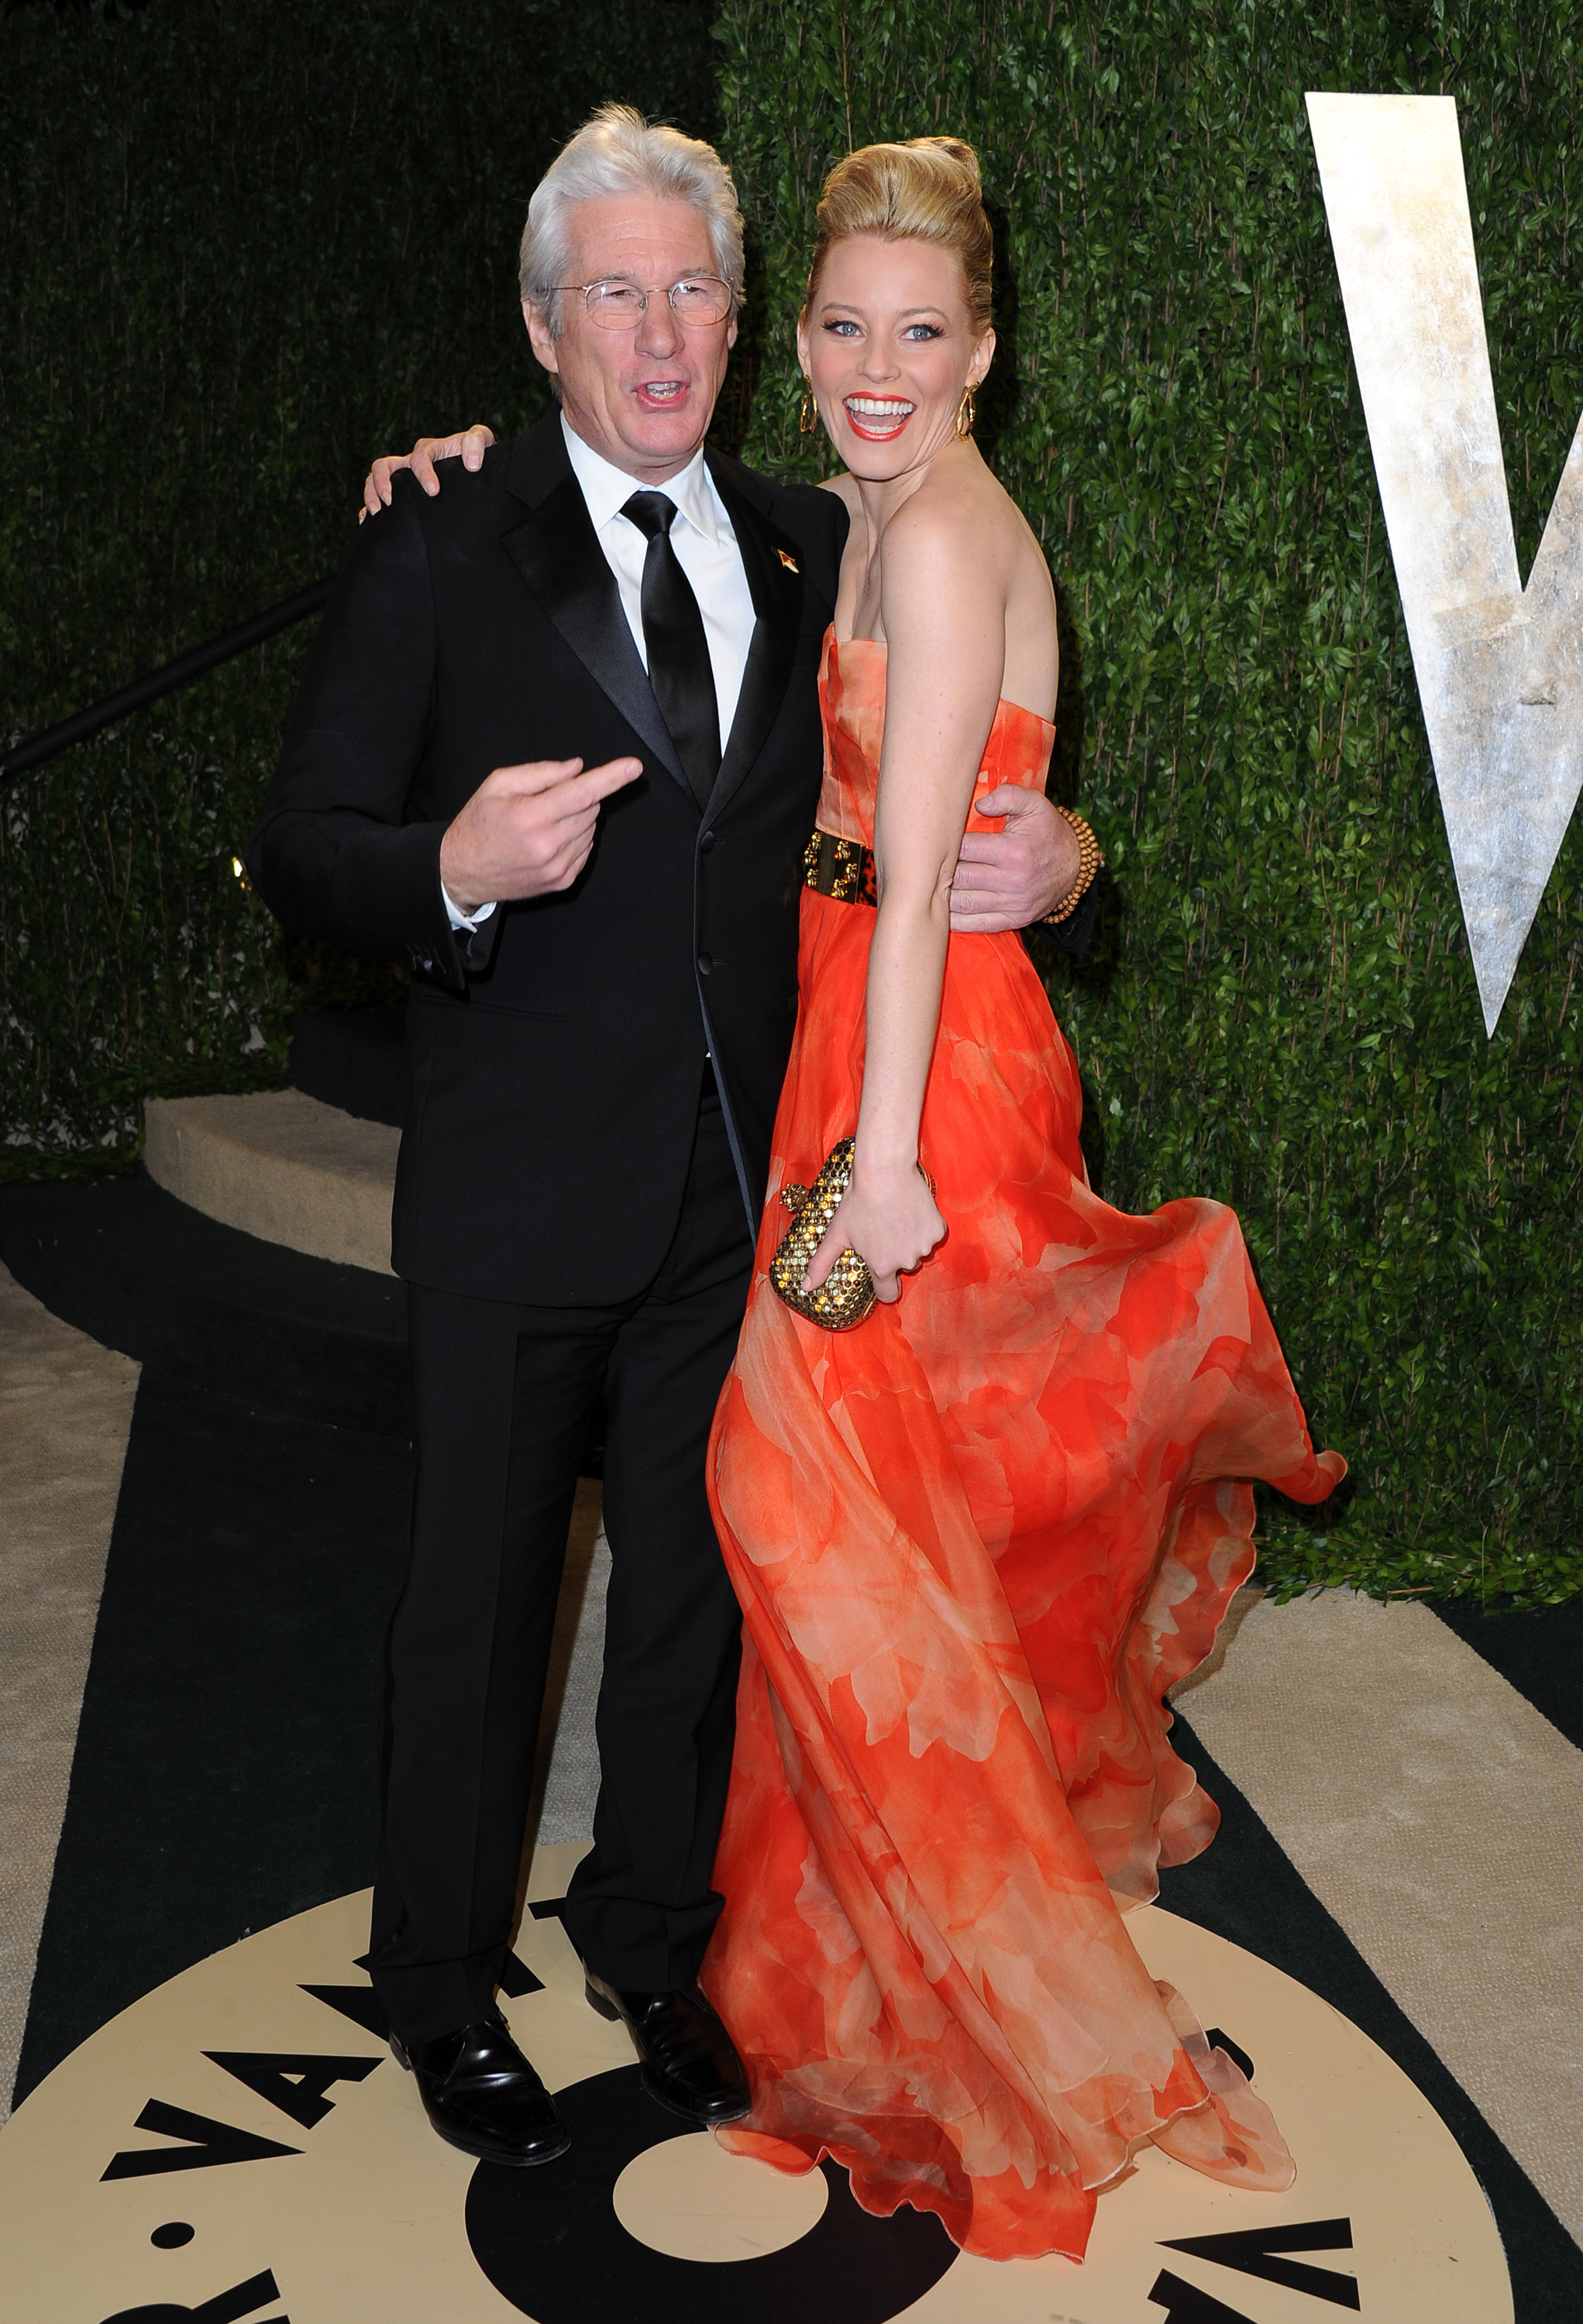 Richard Gere and Elizabeth Banks arrived at the Vanity Fair Oscar party on Sunday night.